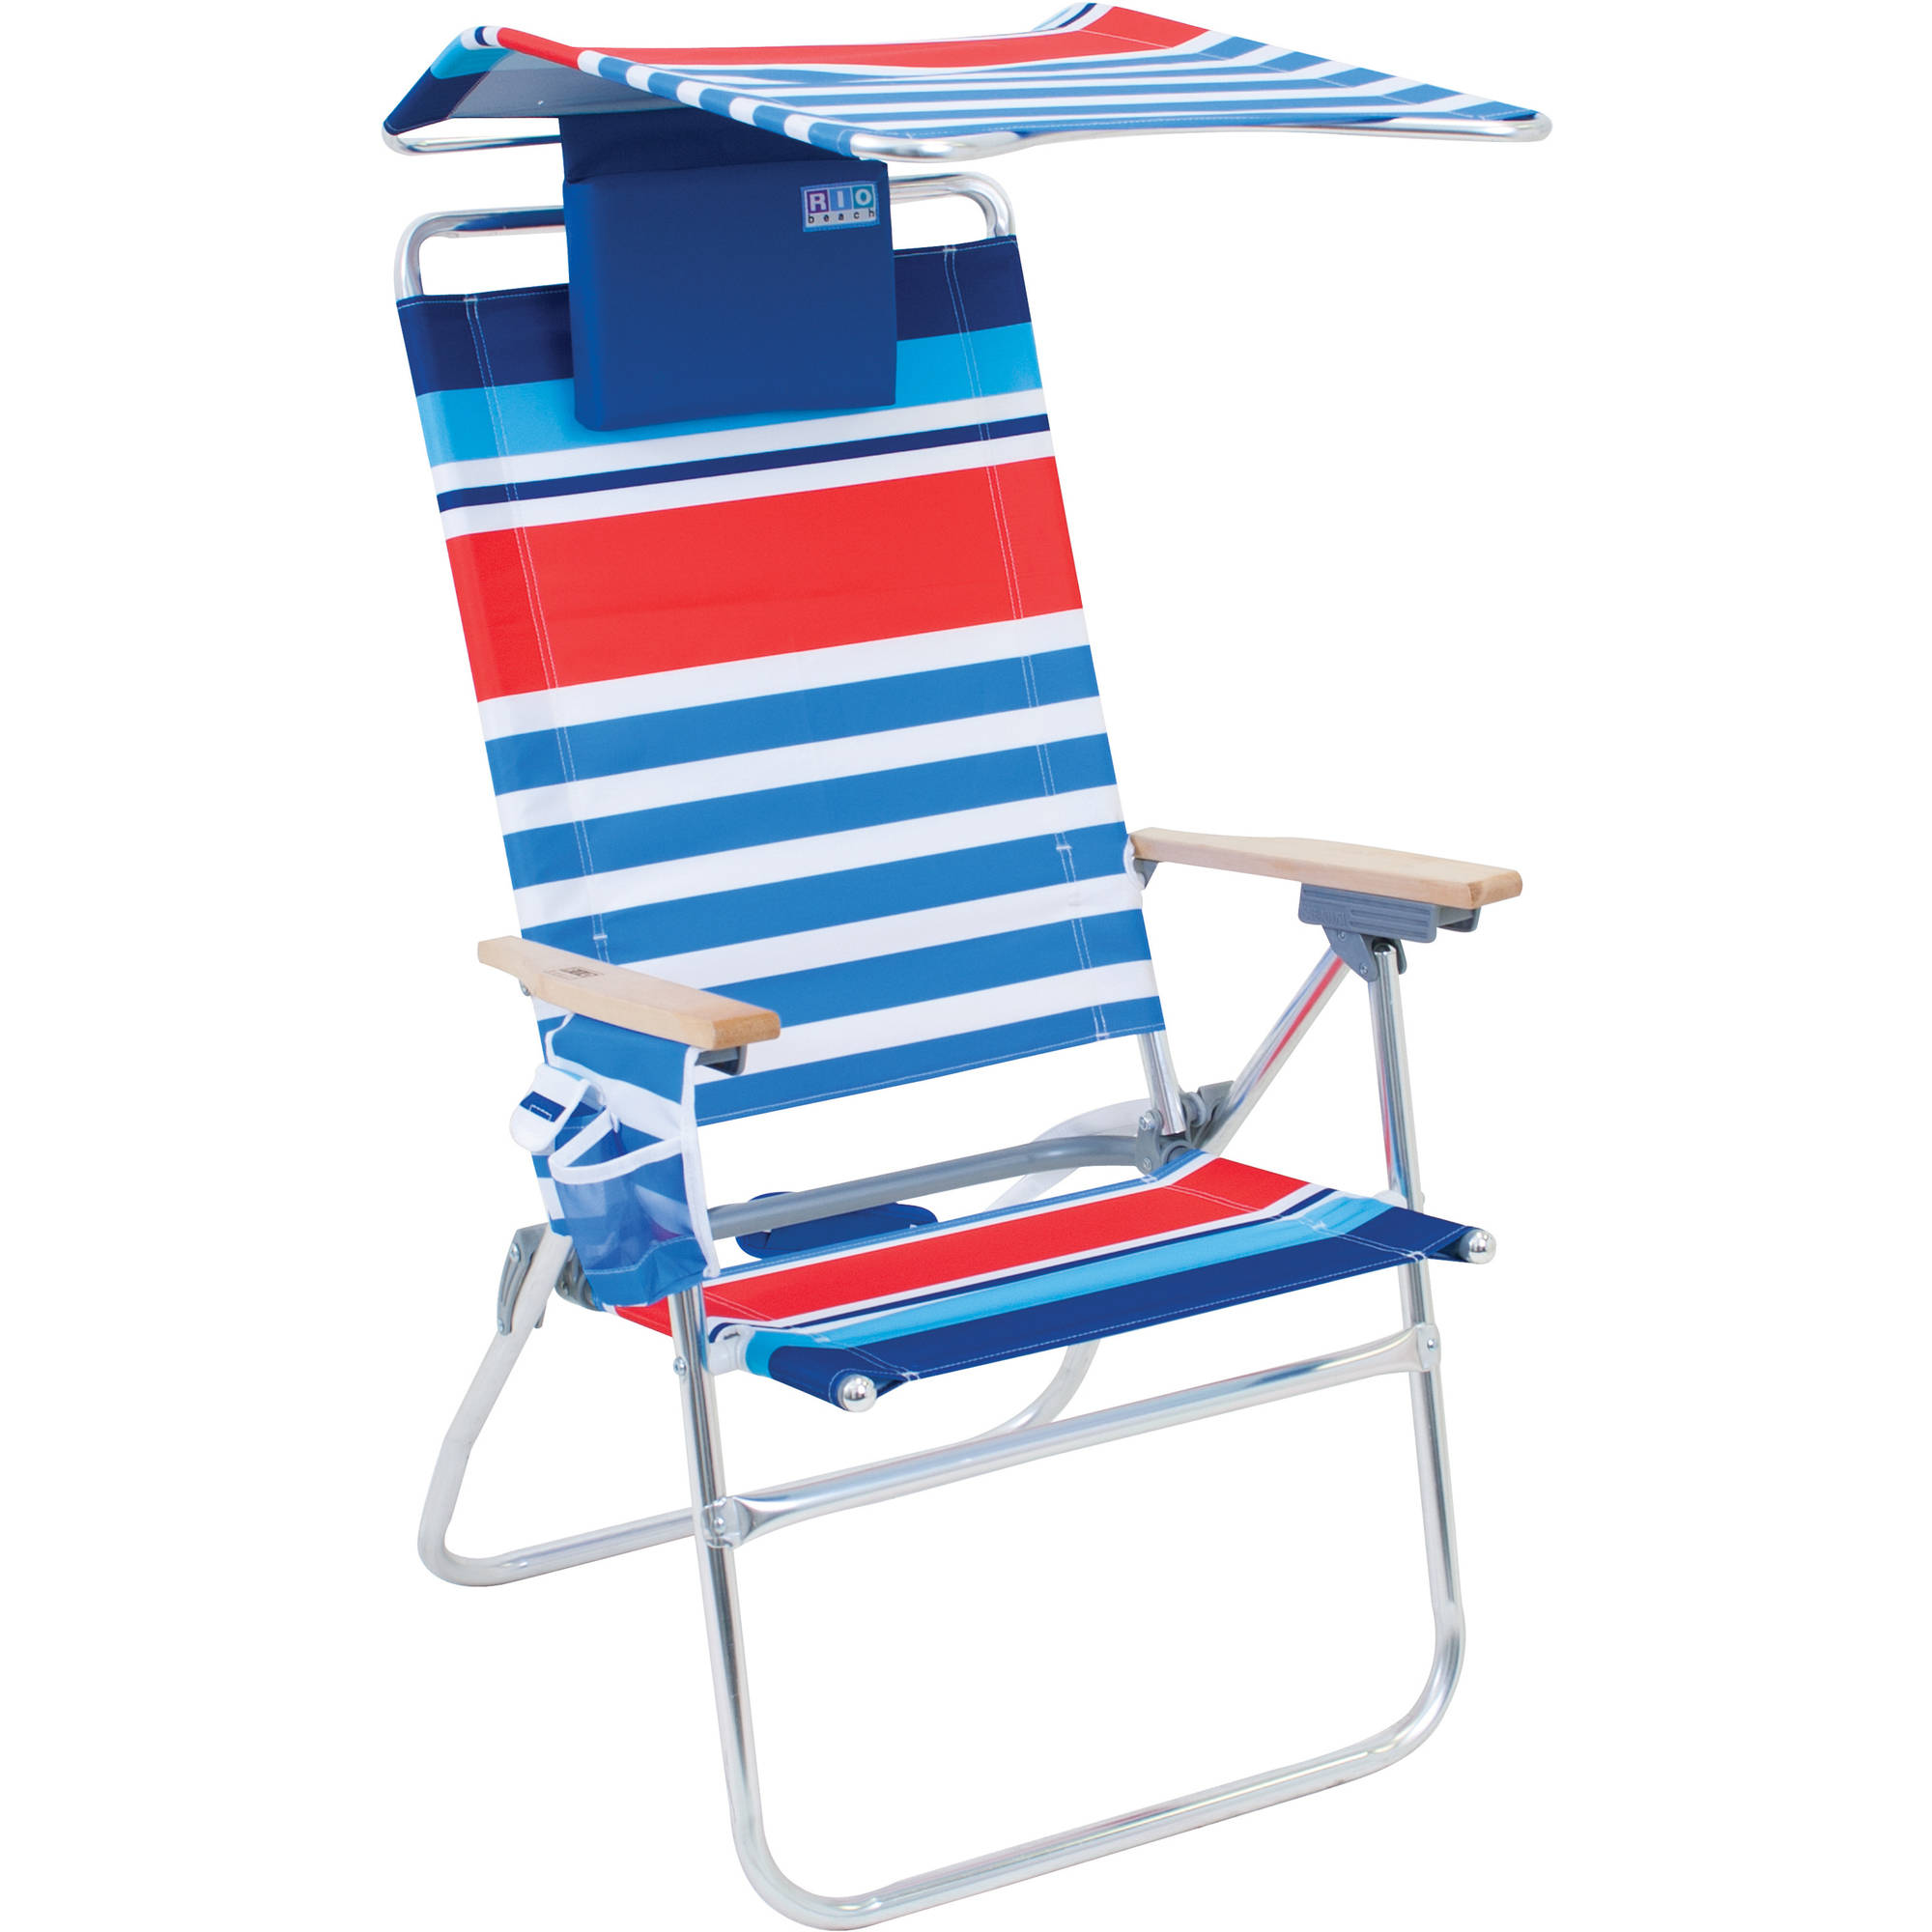 sc 1 st  Walmart & Rio Hi-Boy 7-Position Beach Chair with Adjustable Canopy - Walmart.com